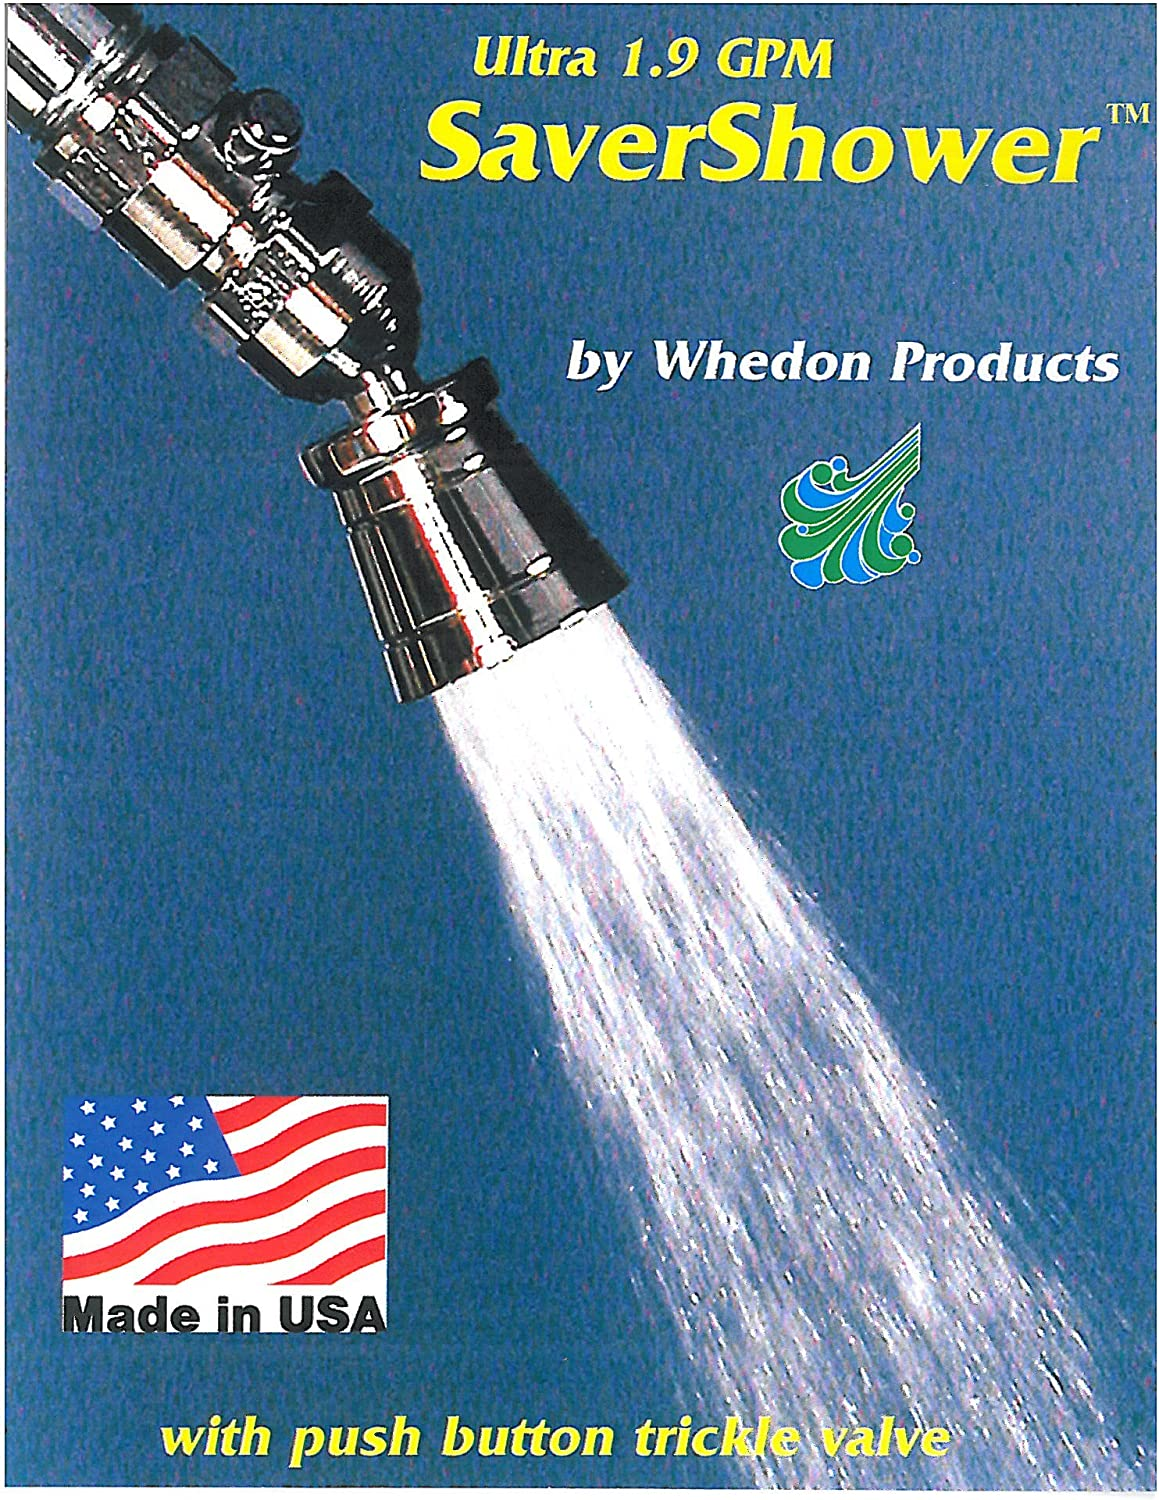 Whedon USP29C Deluxe Ultra 1.9 Saver Shower, Chrome Plated Brass